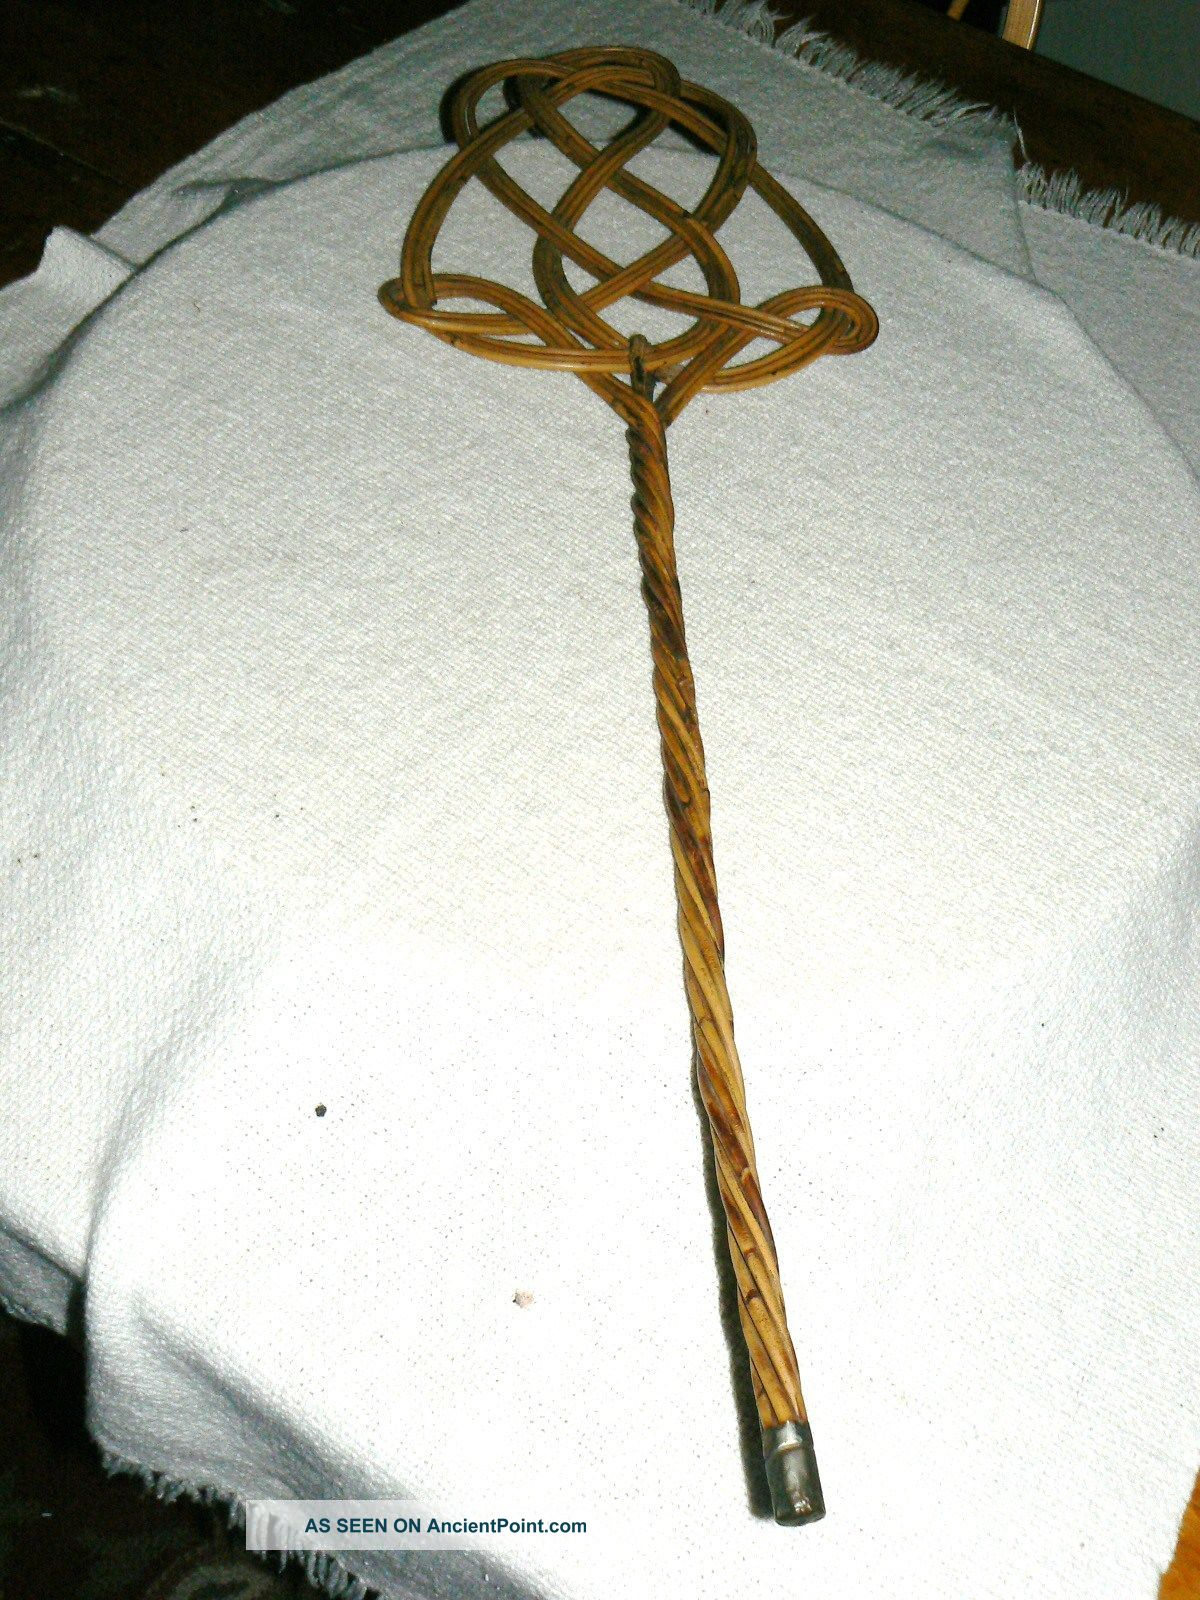 Antique Early 1900's Cane Wicker Carpet Rug Beater - Simply Gorgeous Other Antique Home & Hearth photo